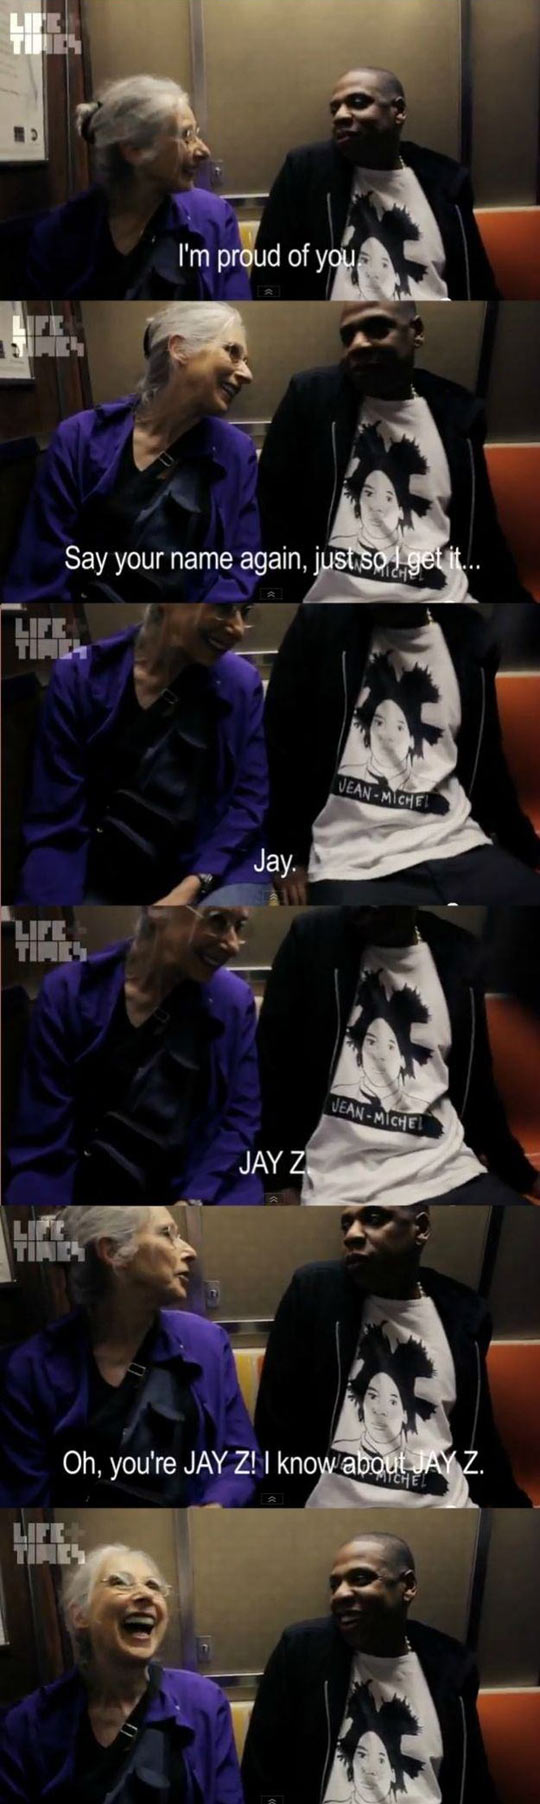 funny-Jay-Z-subway-old-lady-show